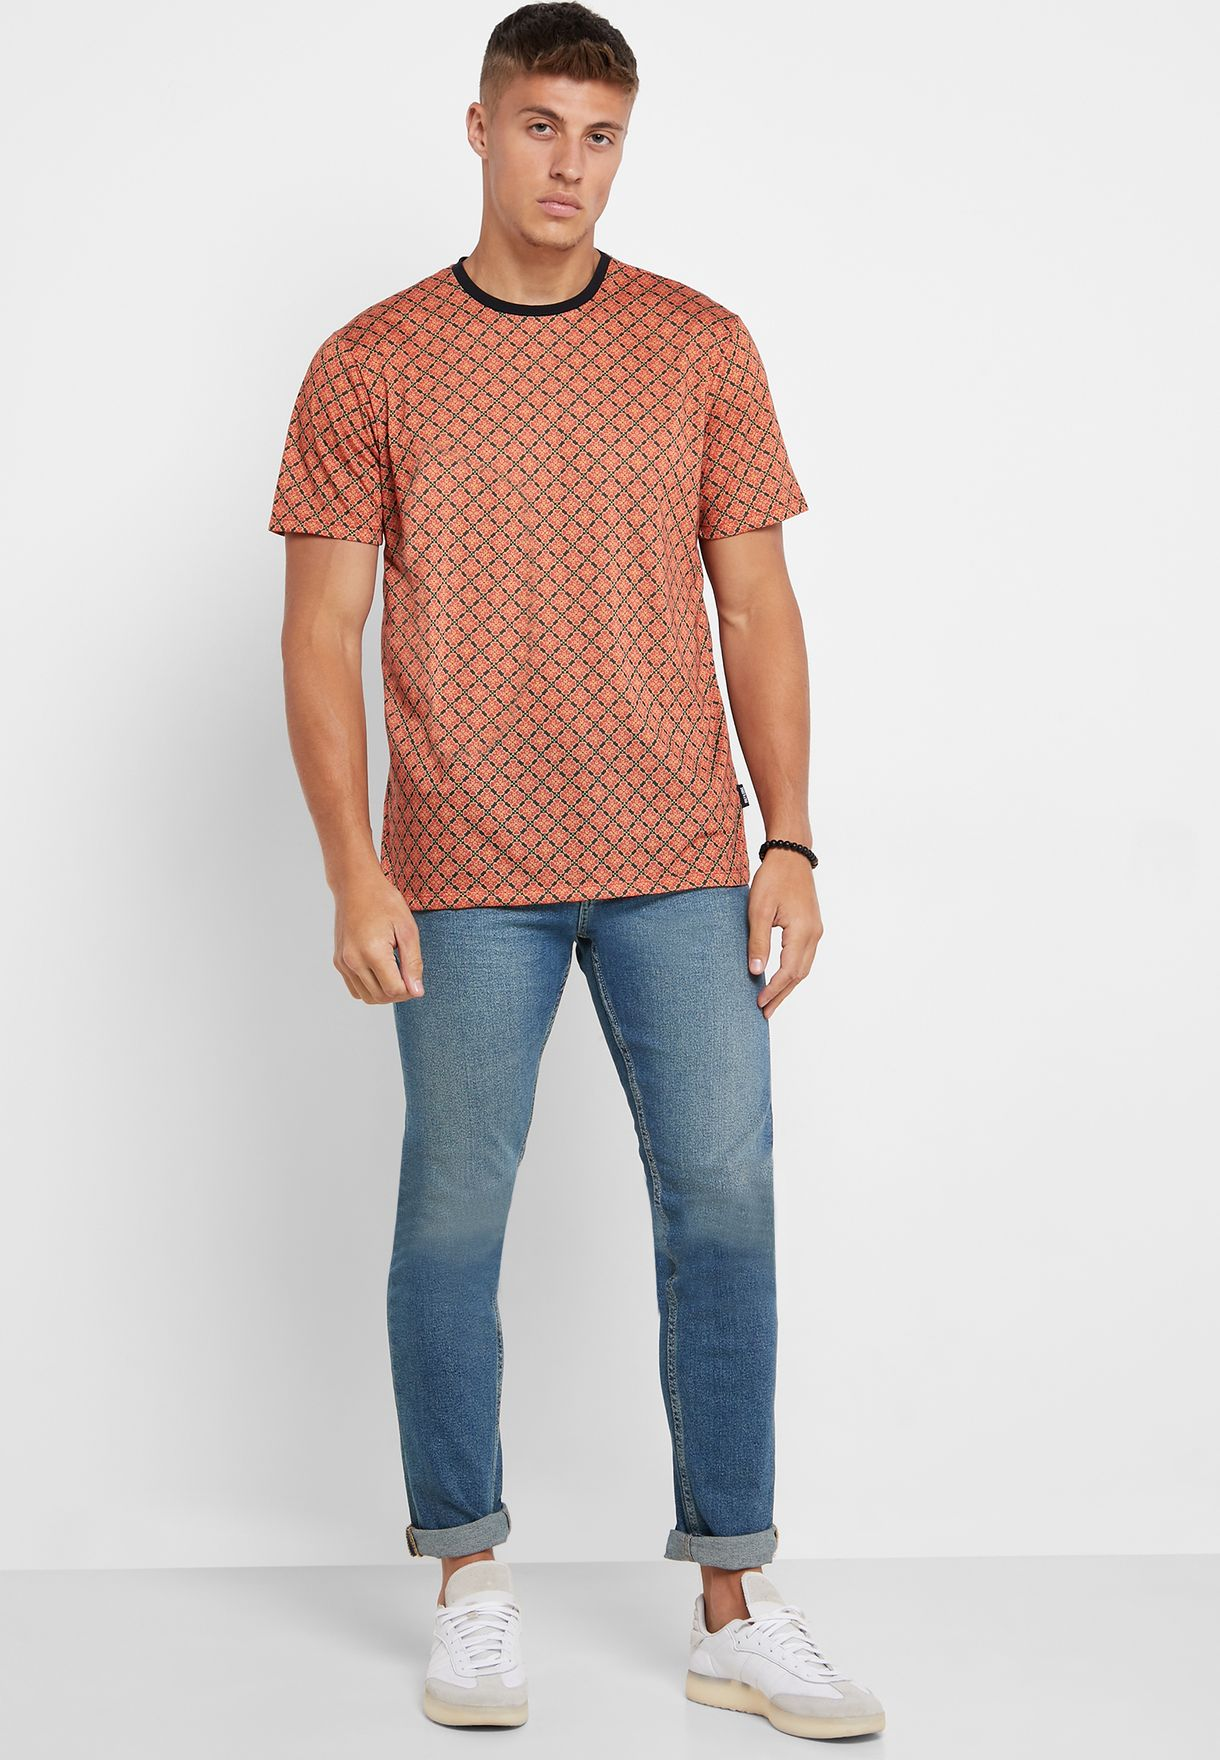 All Over Print Crew Neck T-Shirt